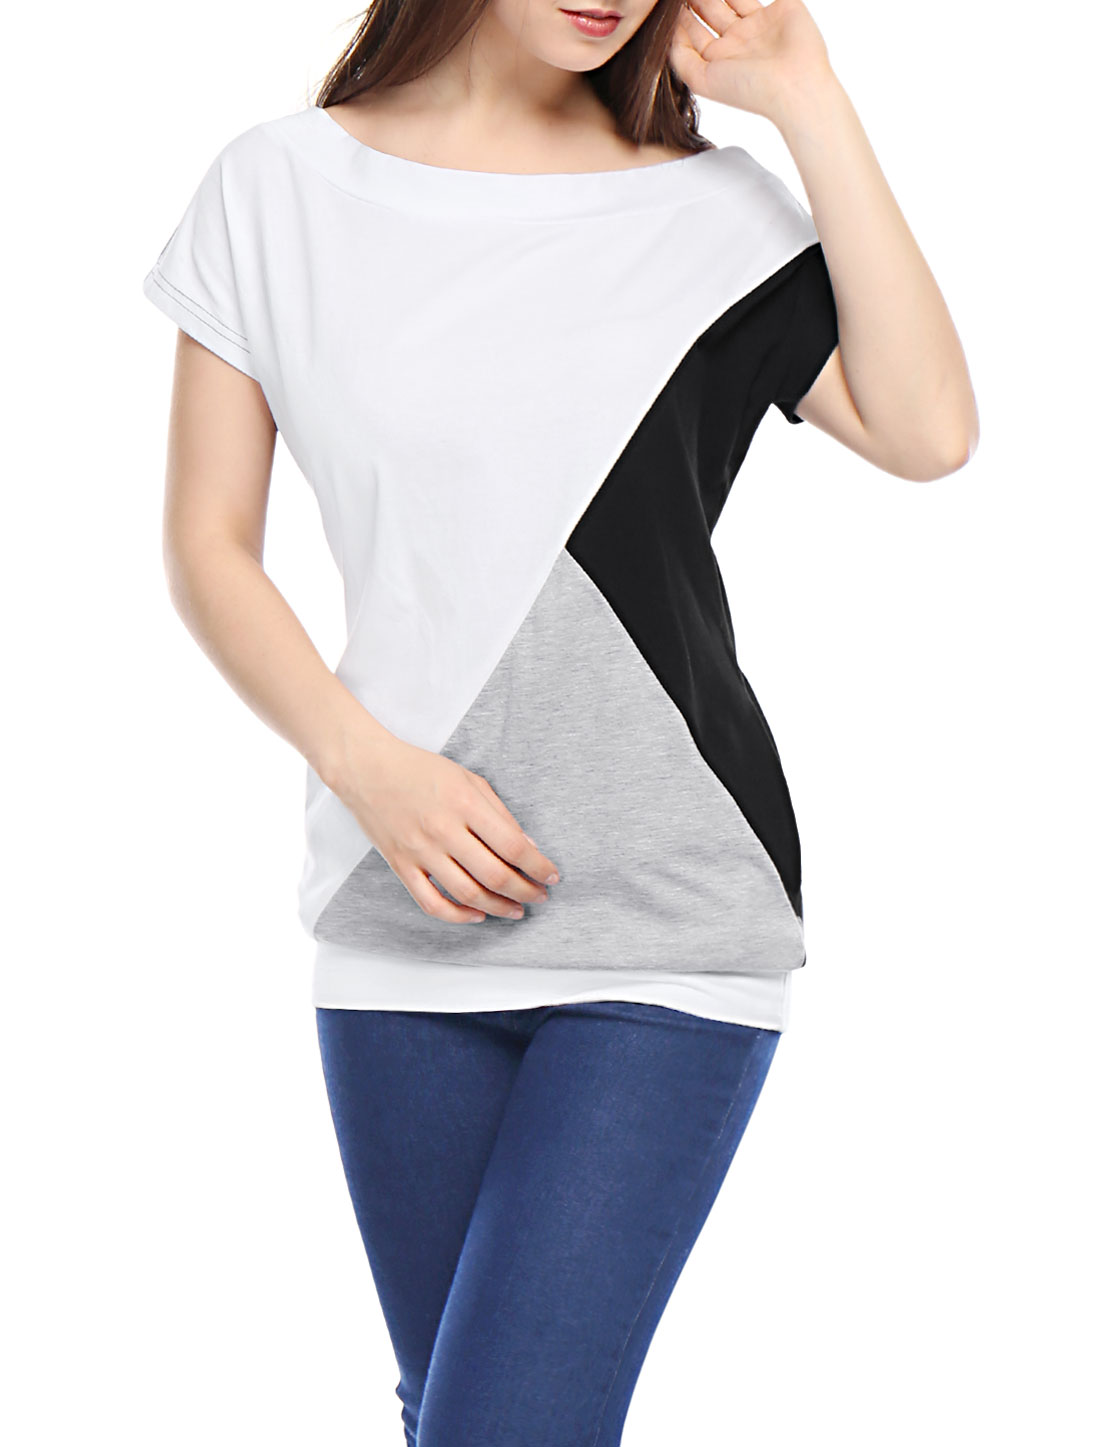 Woman Black White Gray Pullover Design Short Batwing Sleeve Leisure Tunic Shirt M